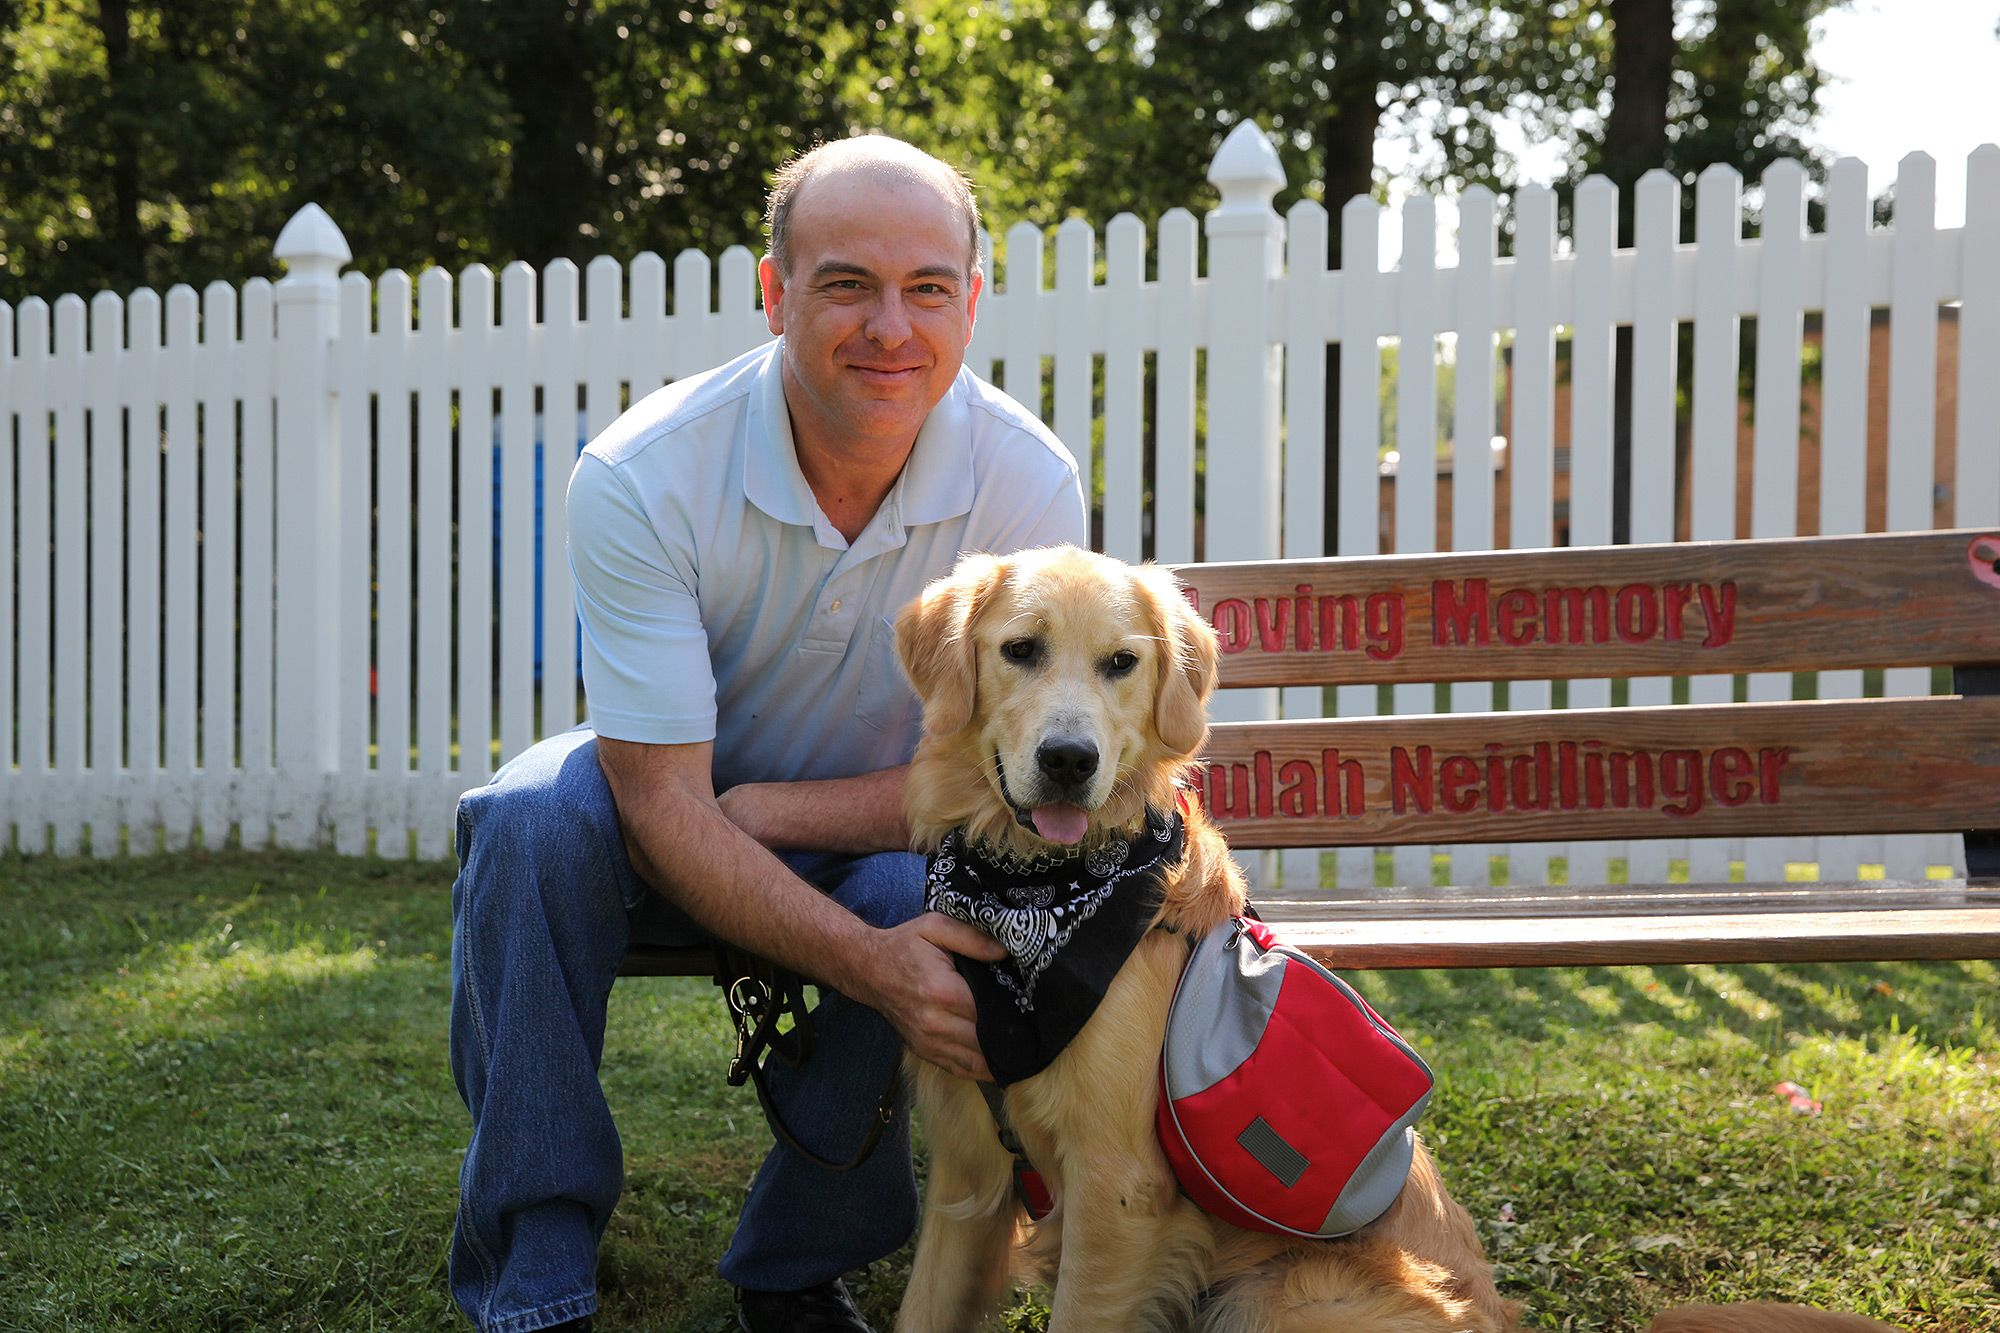 Golden retriever service dog is trained to snuggle his